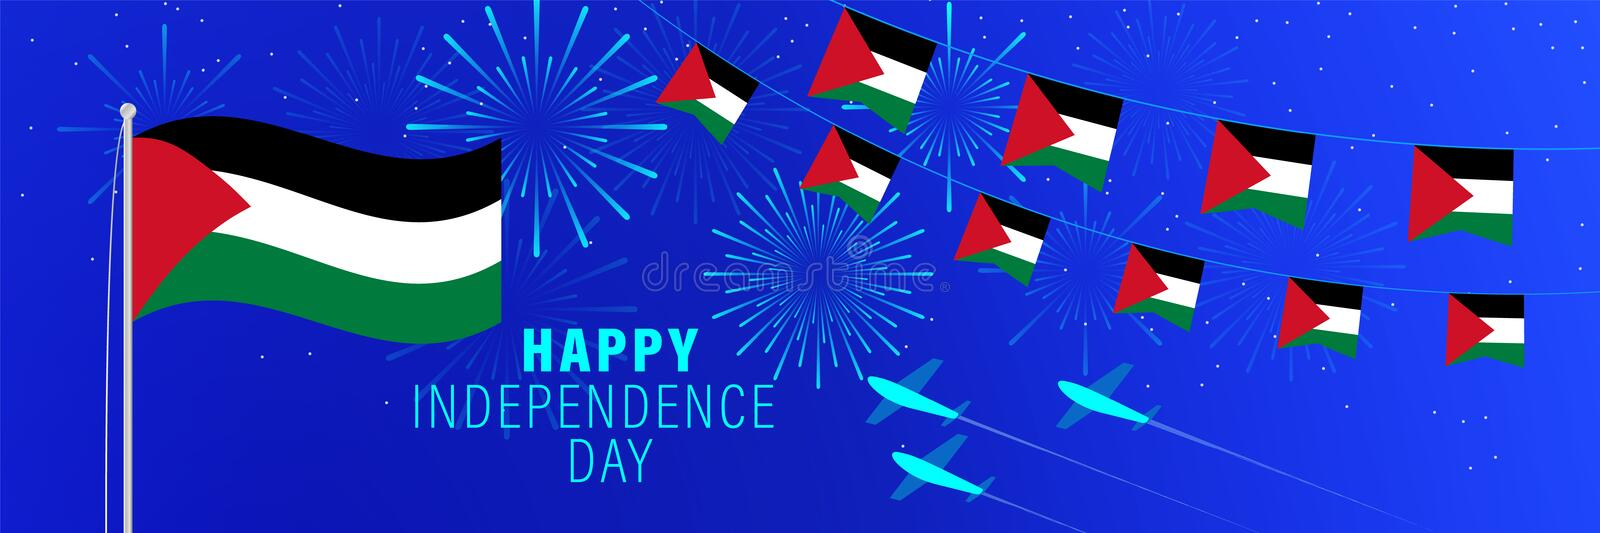 November 15 Palestine Independence Day greeting card.  Celebration background with fireworks, flags, flagpole and text stock illustration